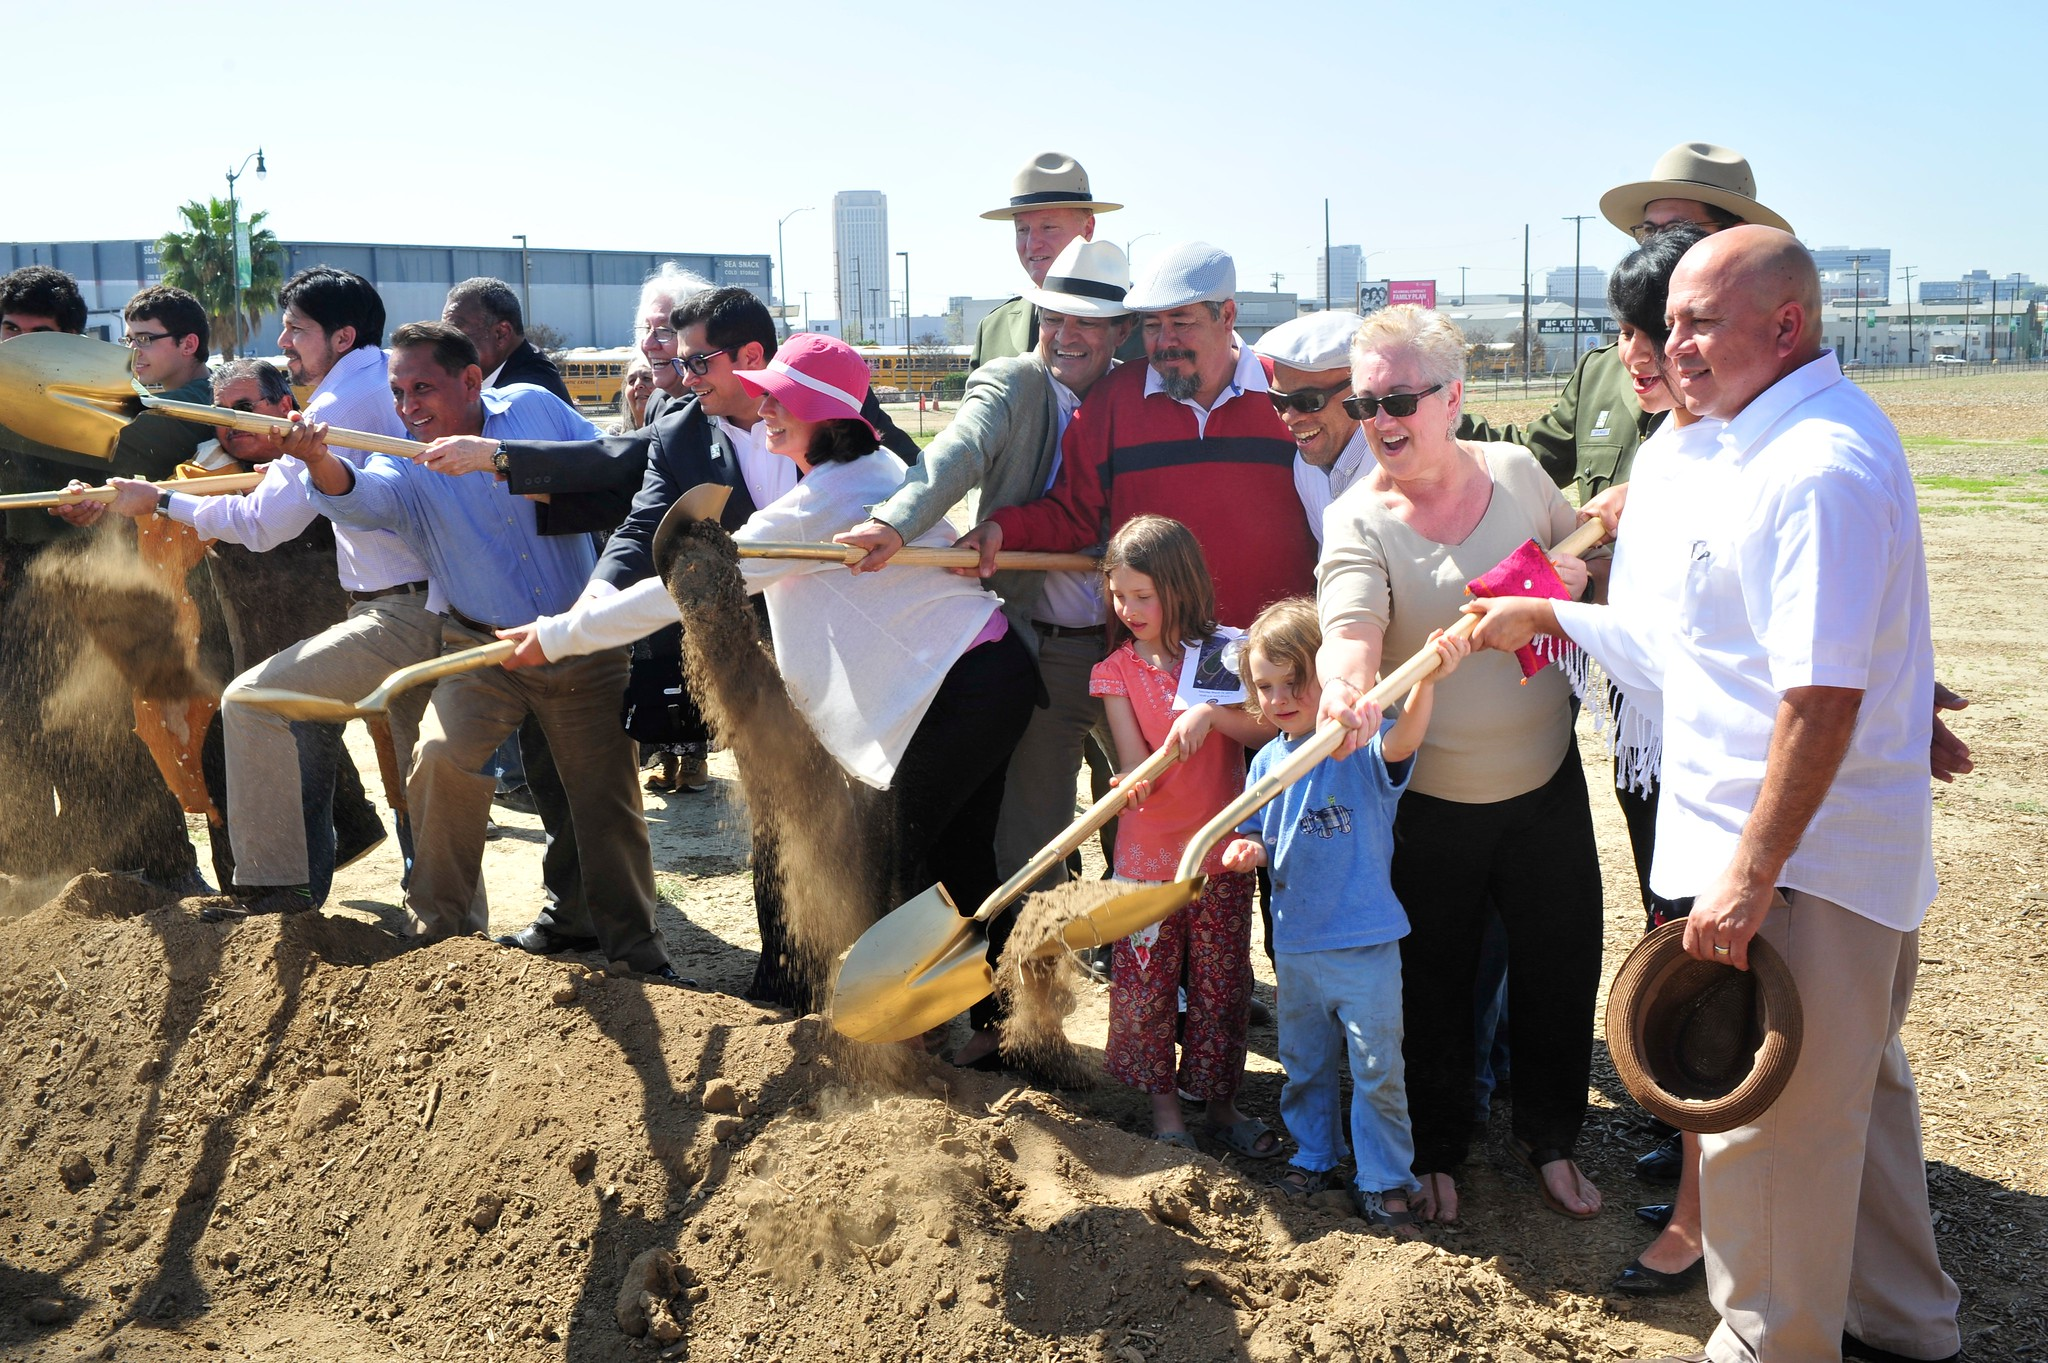 Los Angeles State Historic Park Groundbreaking March 15, 2014